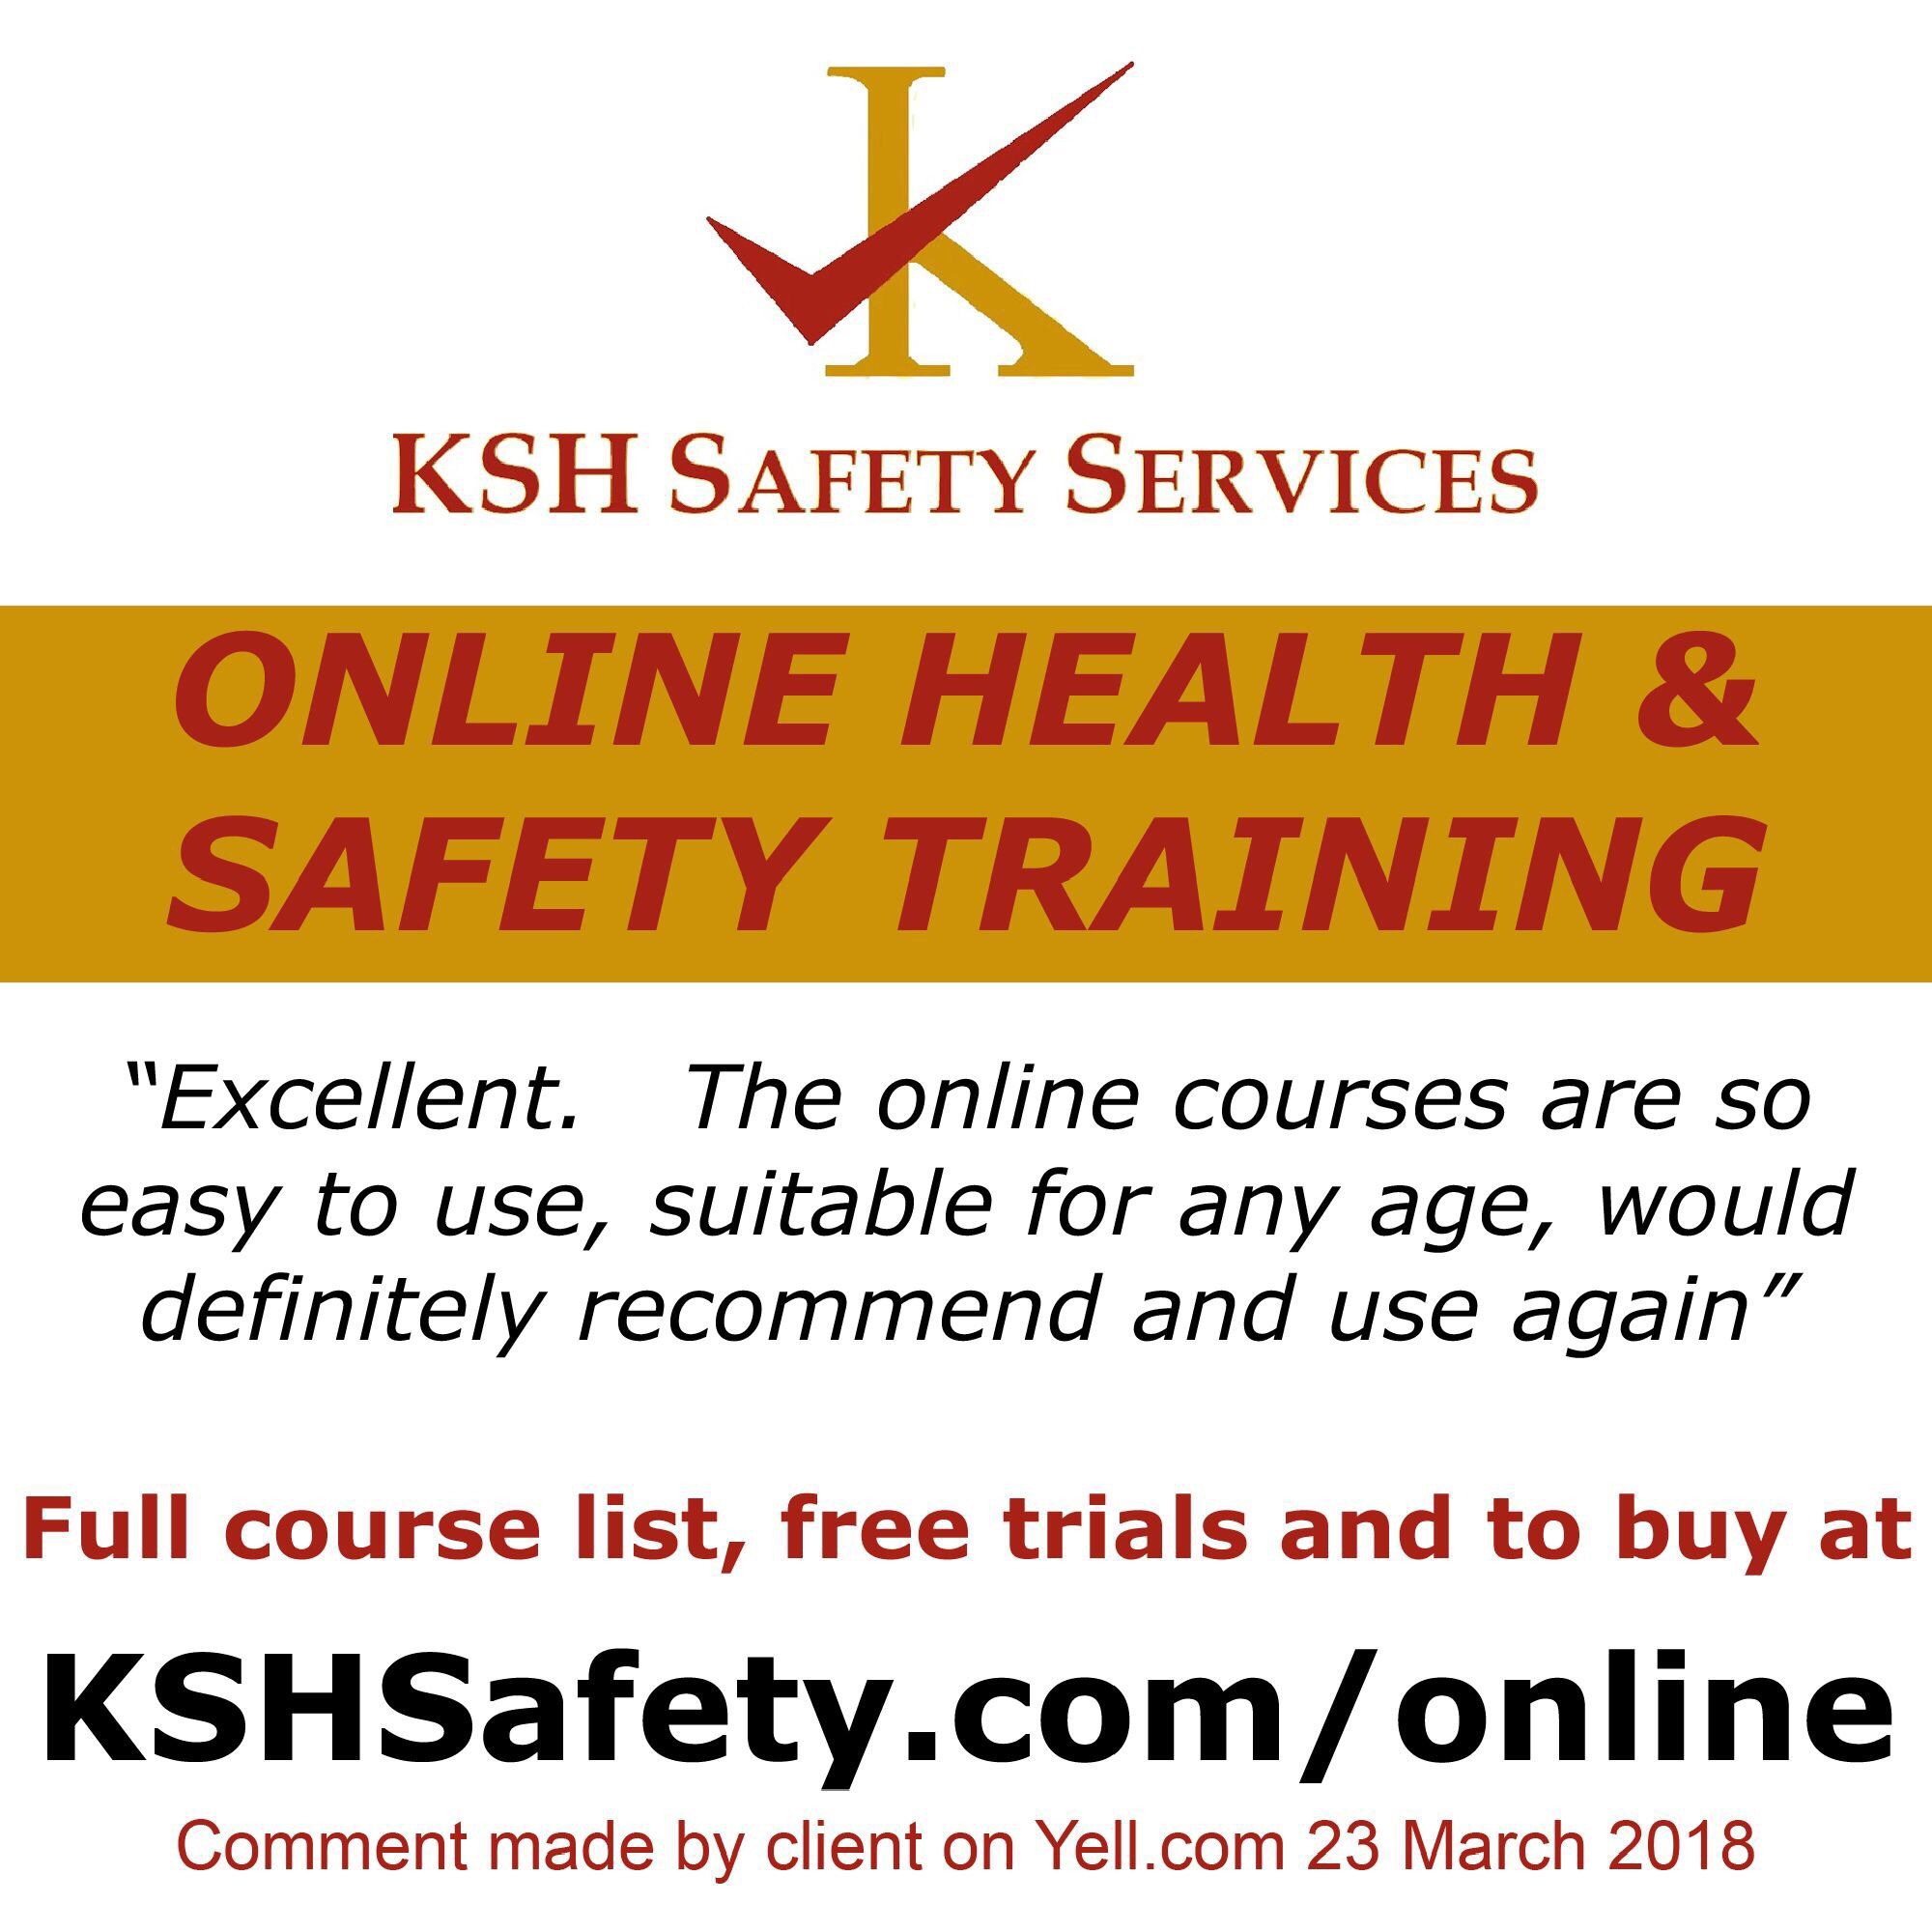 Online health and safety training from KSH Safety Services